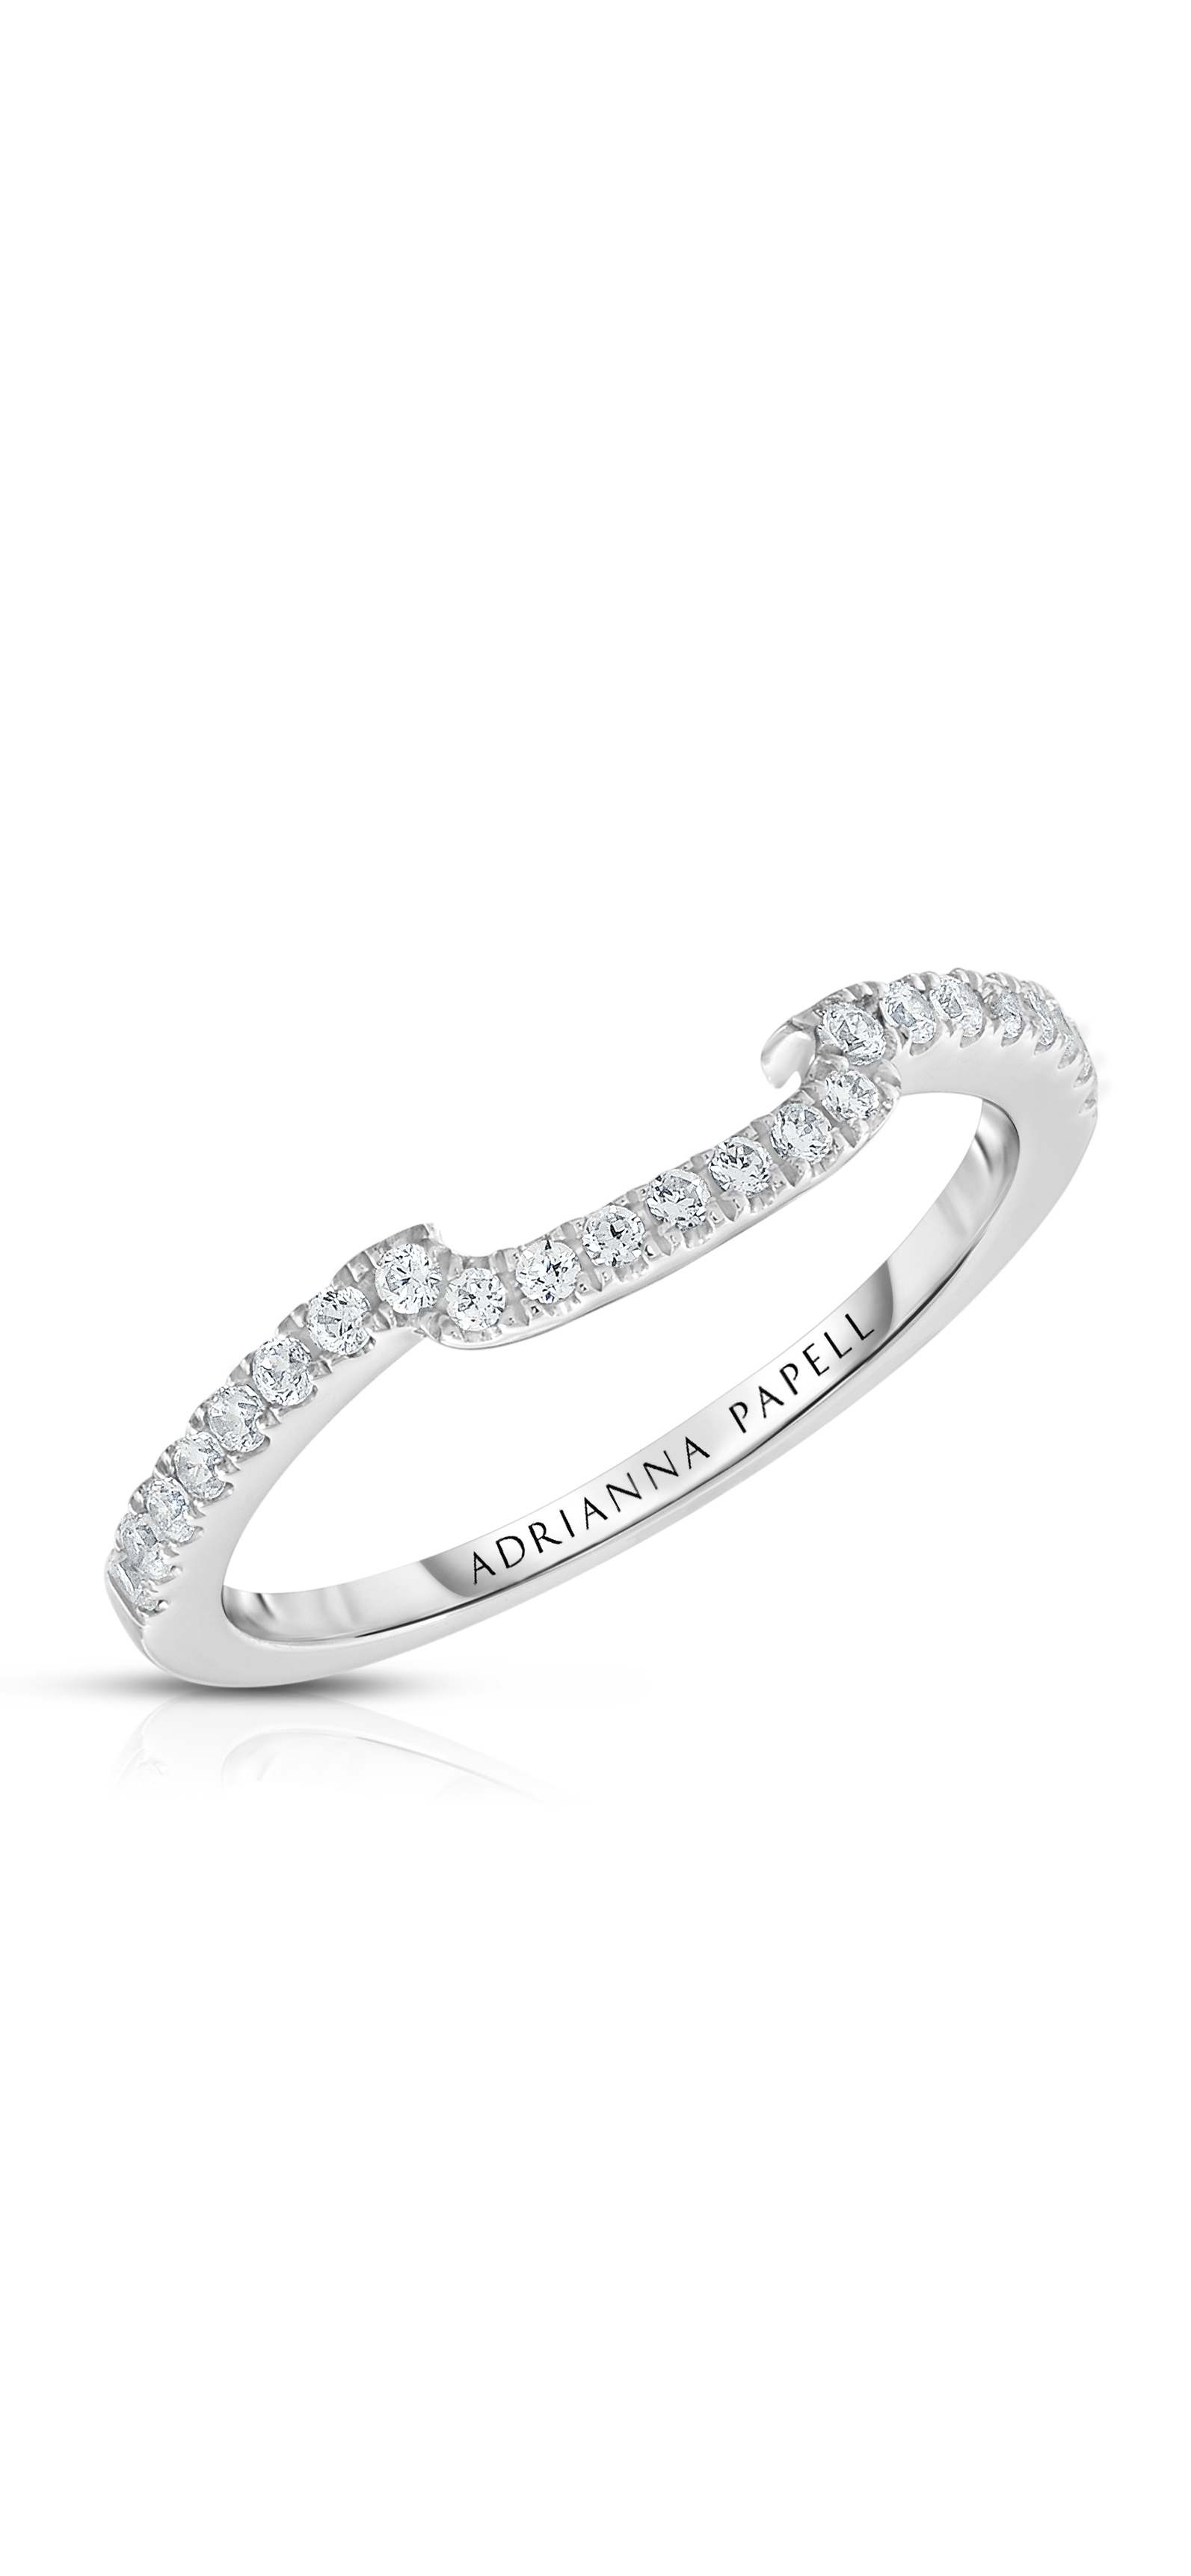 Diamond Contour Wedding Band In 14K White Gold | Adrianna Papell Throughout Most Recent Diamond Contour Wedding Bands In 14K White Gold (View 5 of 15)